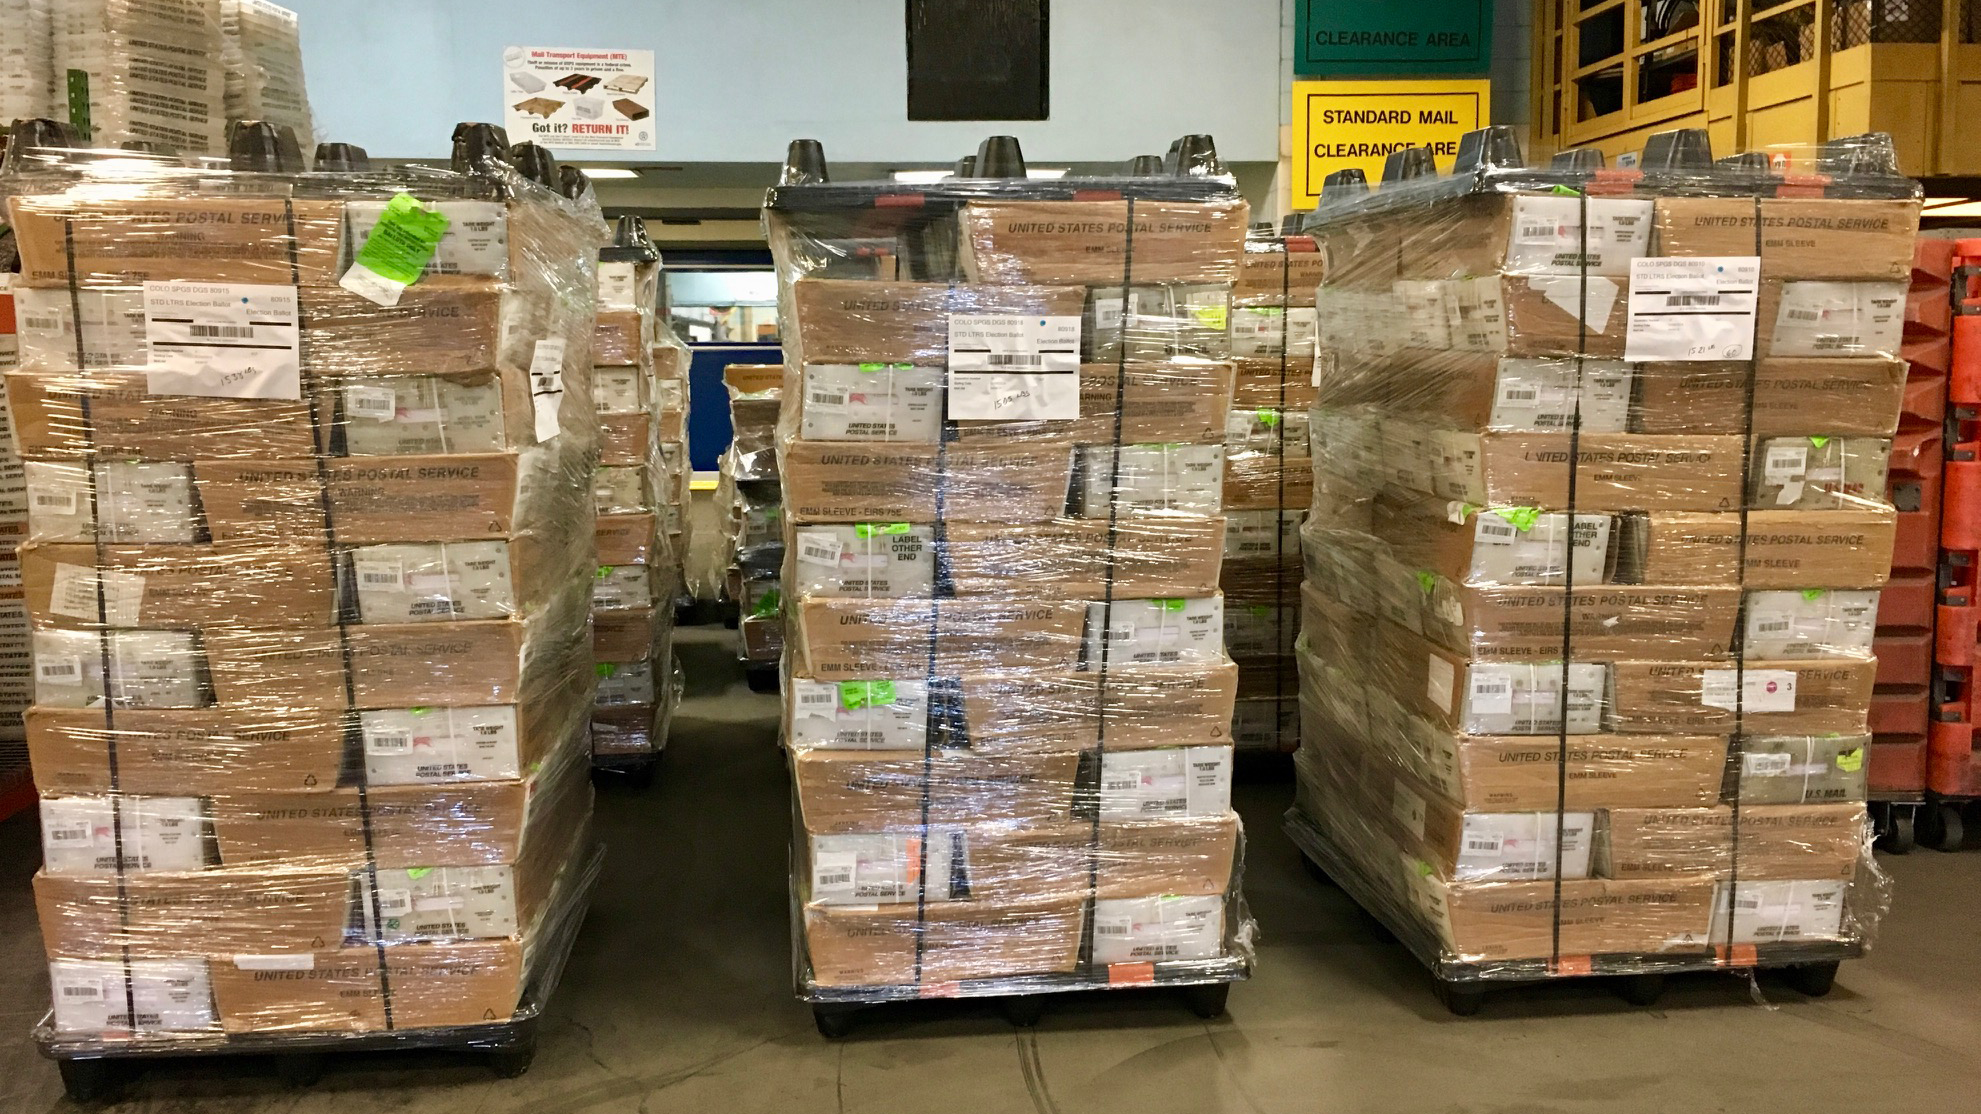 Ballots ready to be mailed. / Courtesy City of Colorado Springs